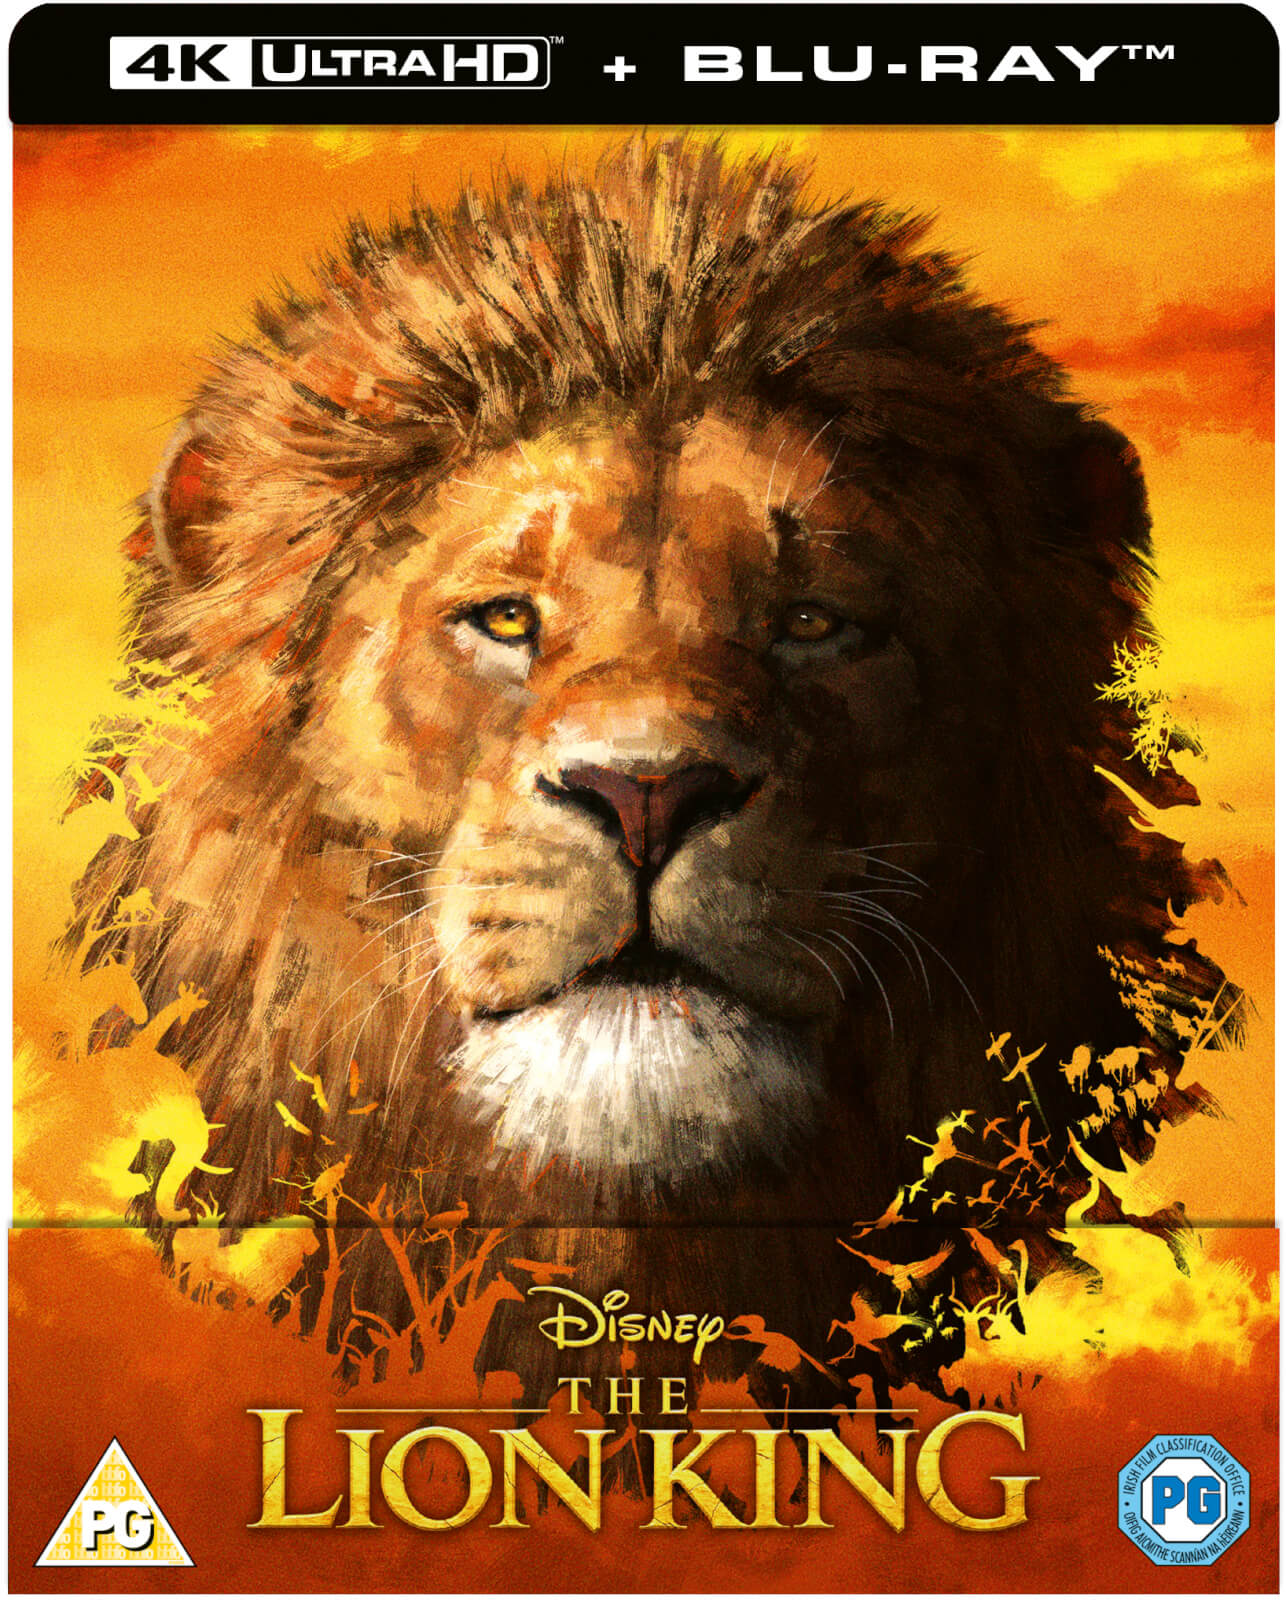 The Lion King Live Action Zavvi Exclusive 4k Ultra Hd Steelbook Includes Blu Ray